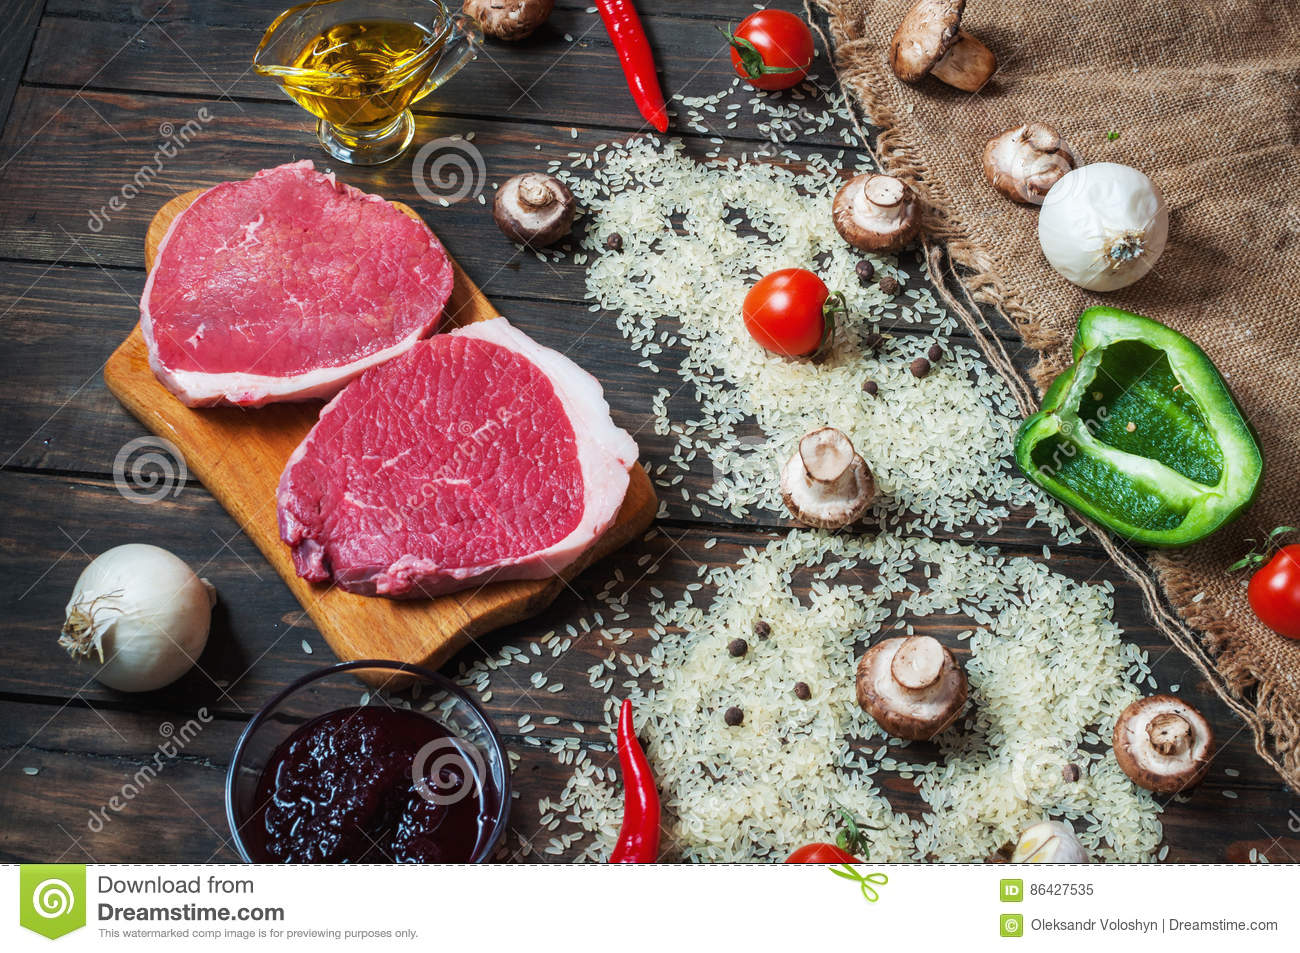 Ingredients for cooking healthy meat dinner. Raw uncooked beef rib eye steaks with mushrooms, rice, herbs and spices on table back